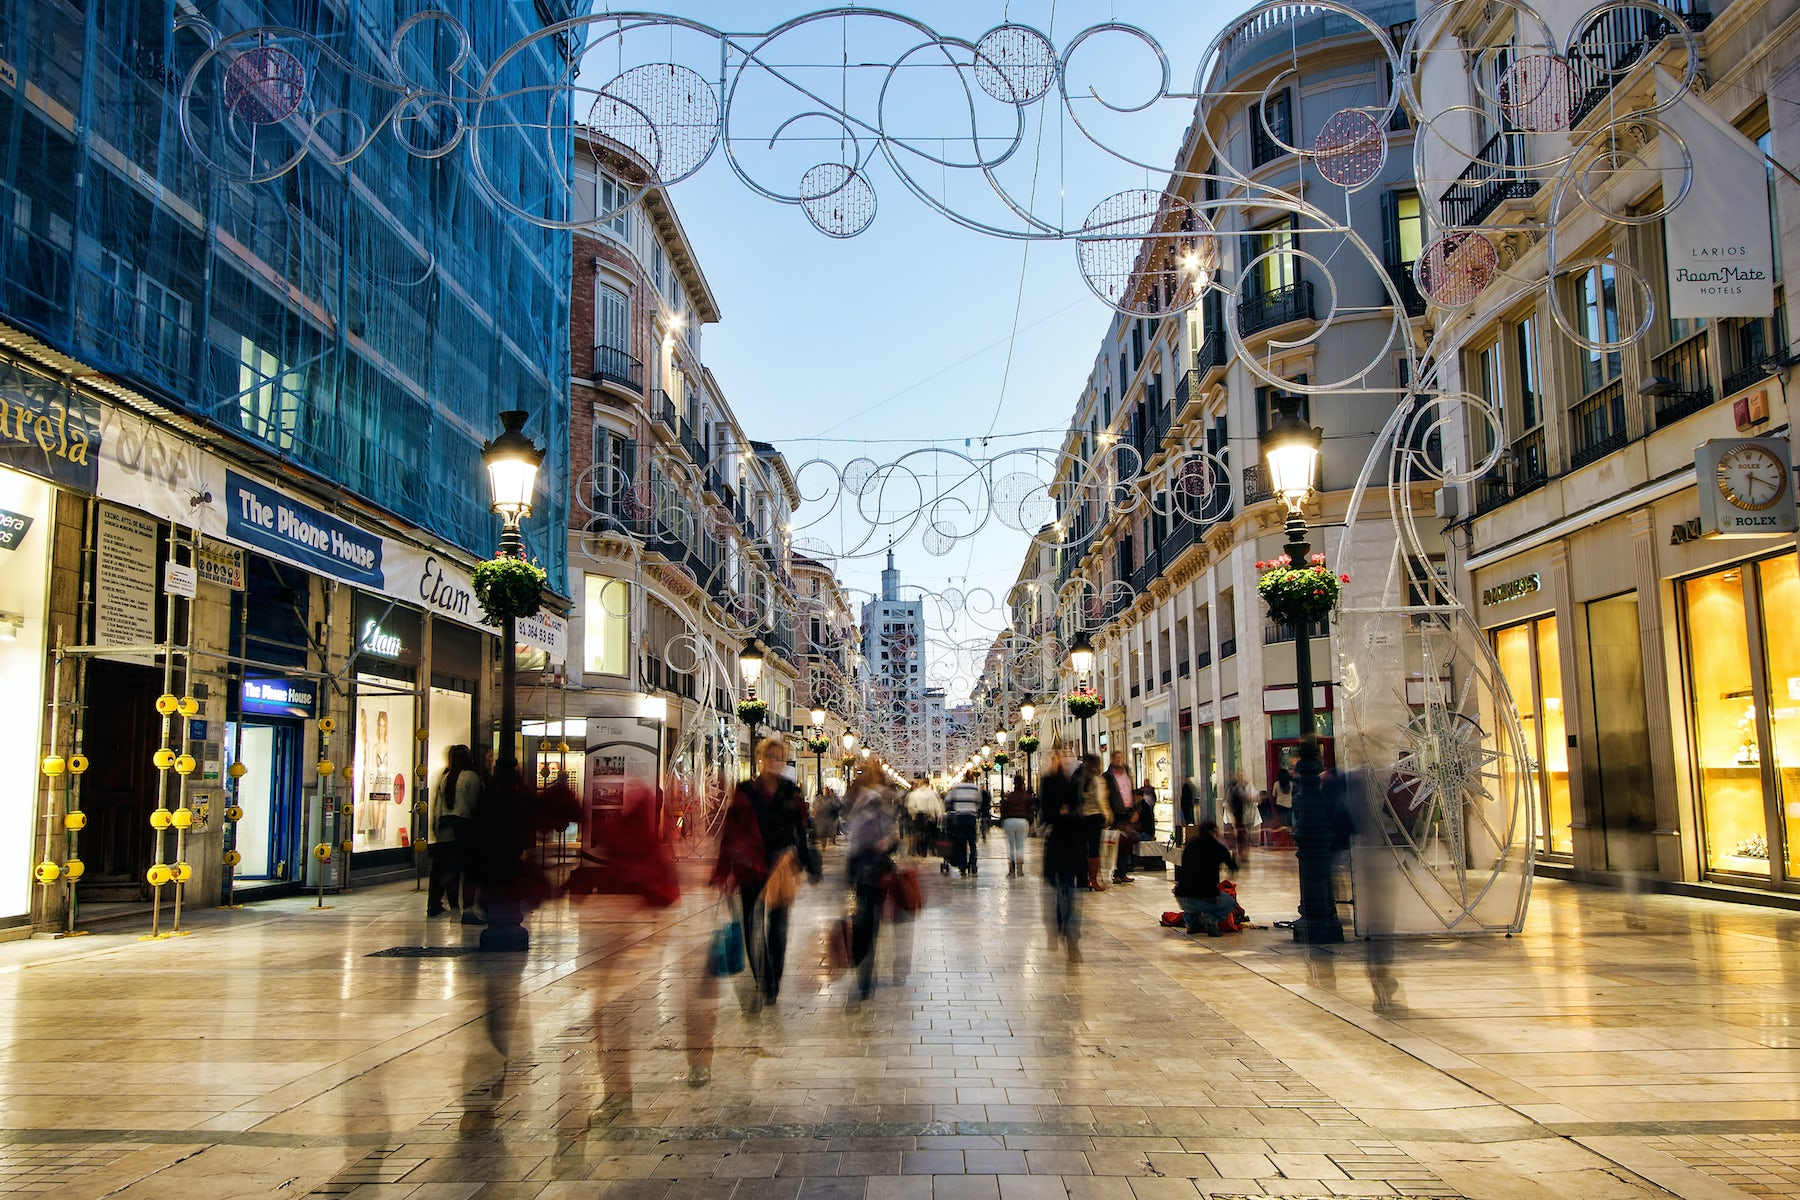 A city shopping street | Source: Shutterstock/Steven Bostock